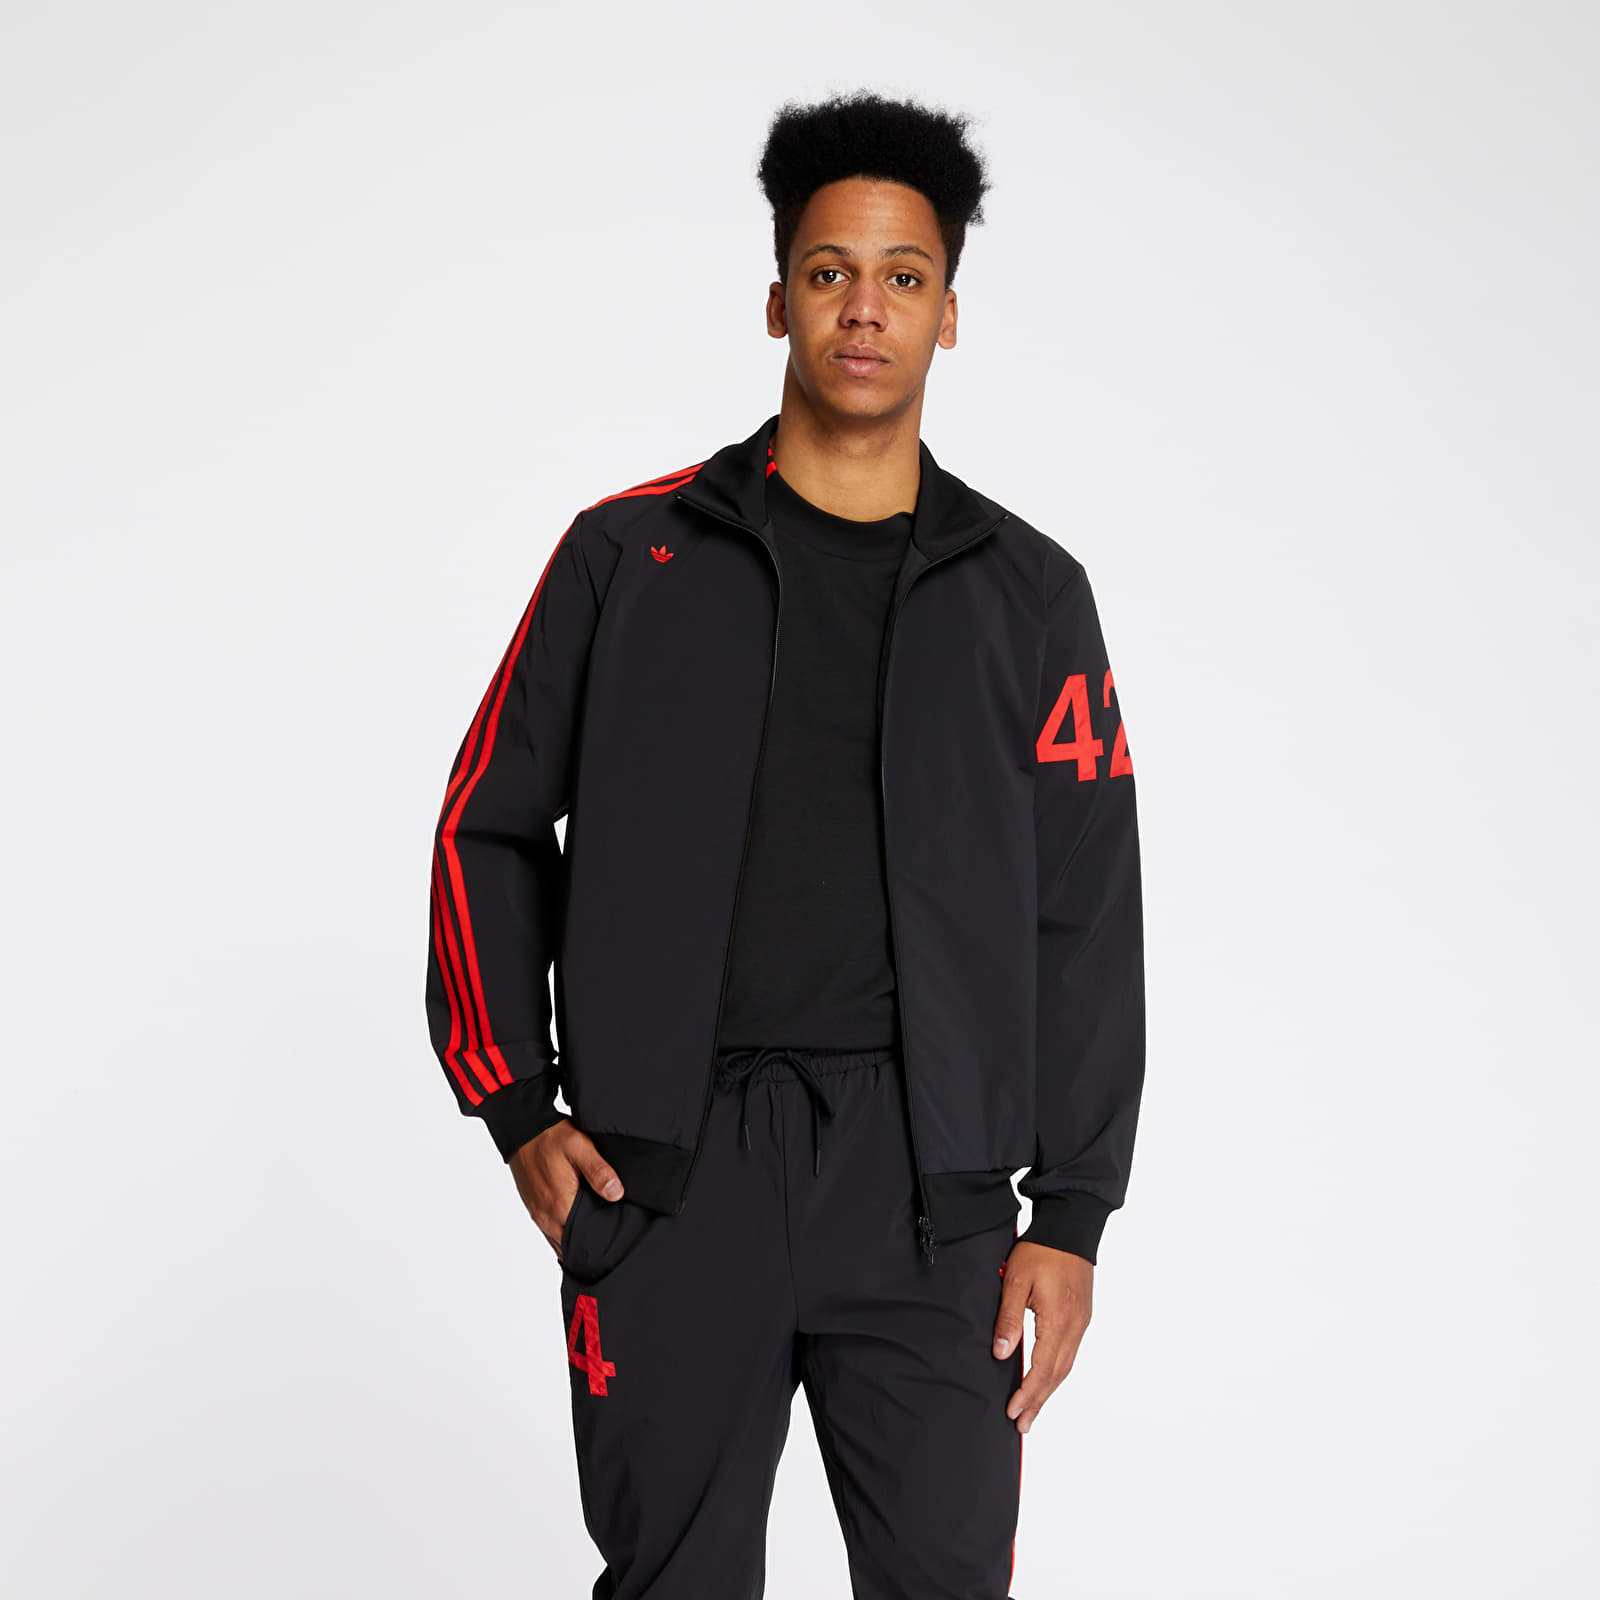 adidas x 424 Track Top